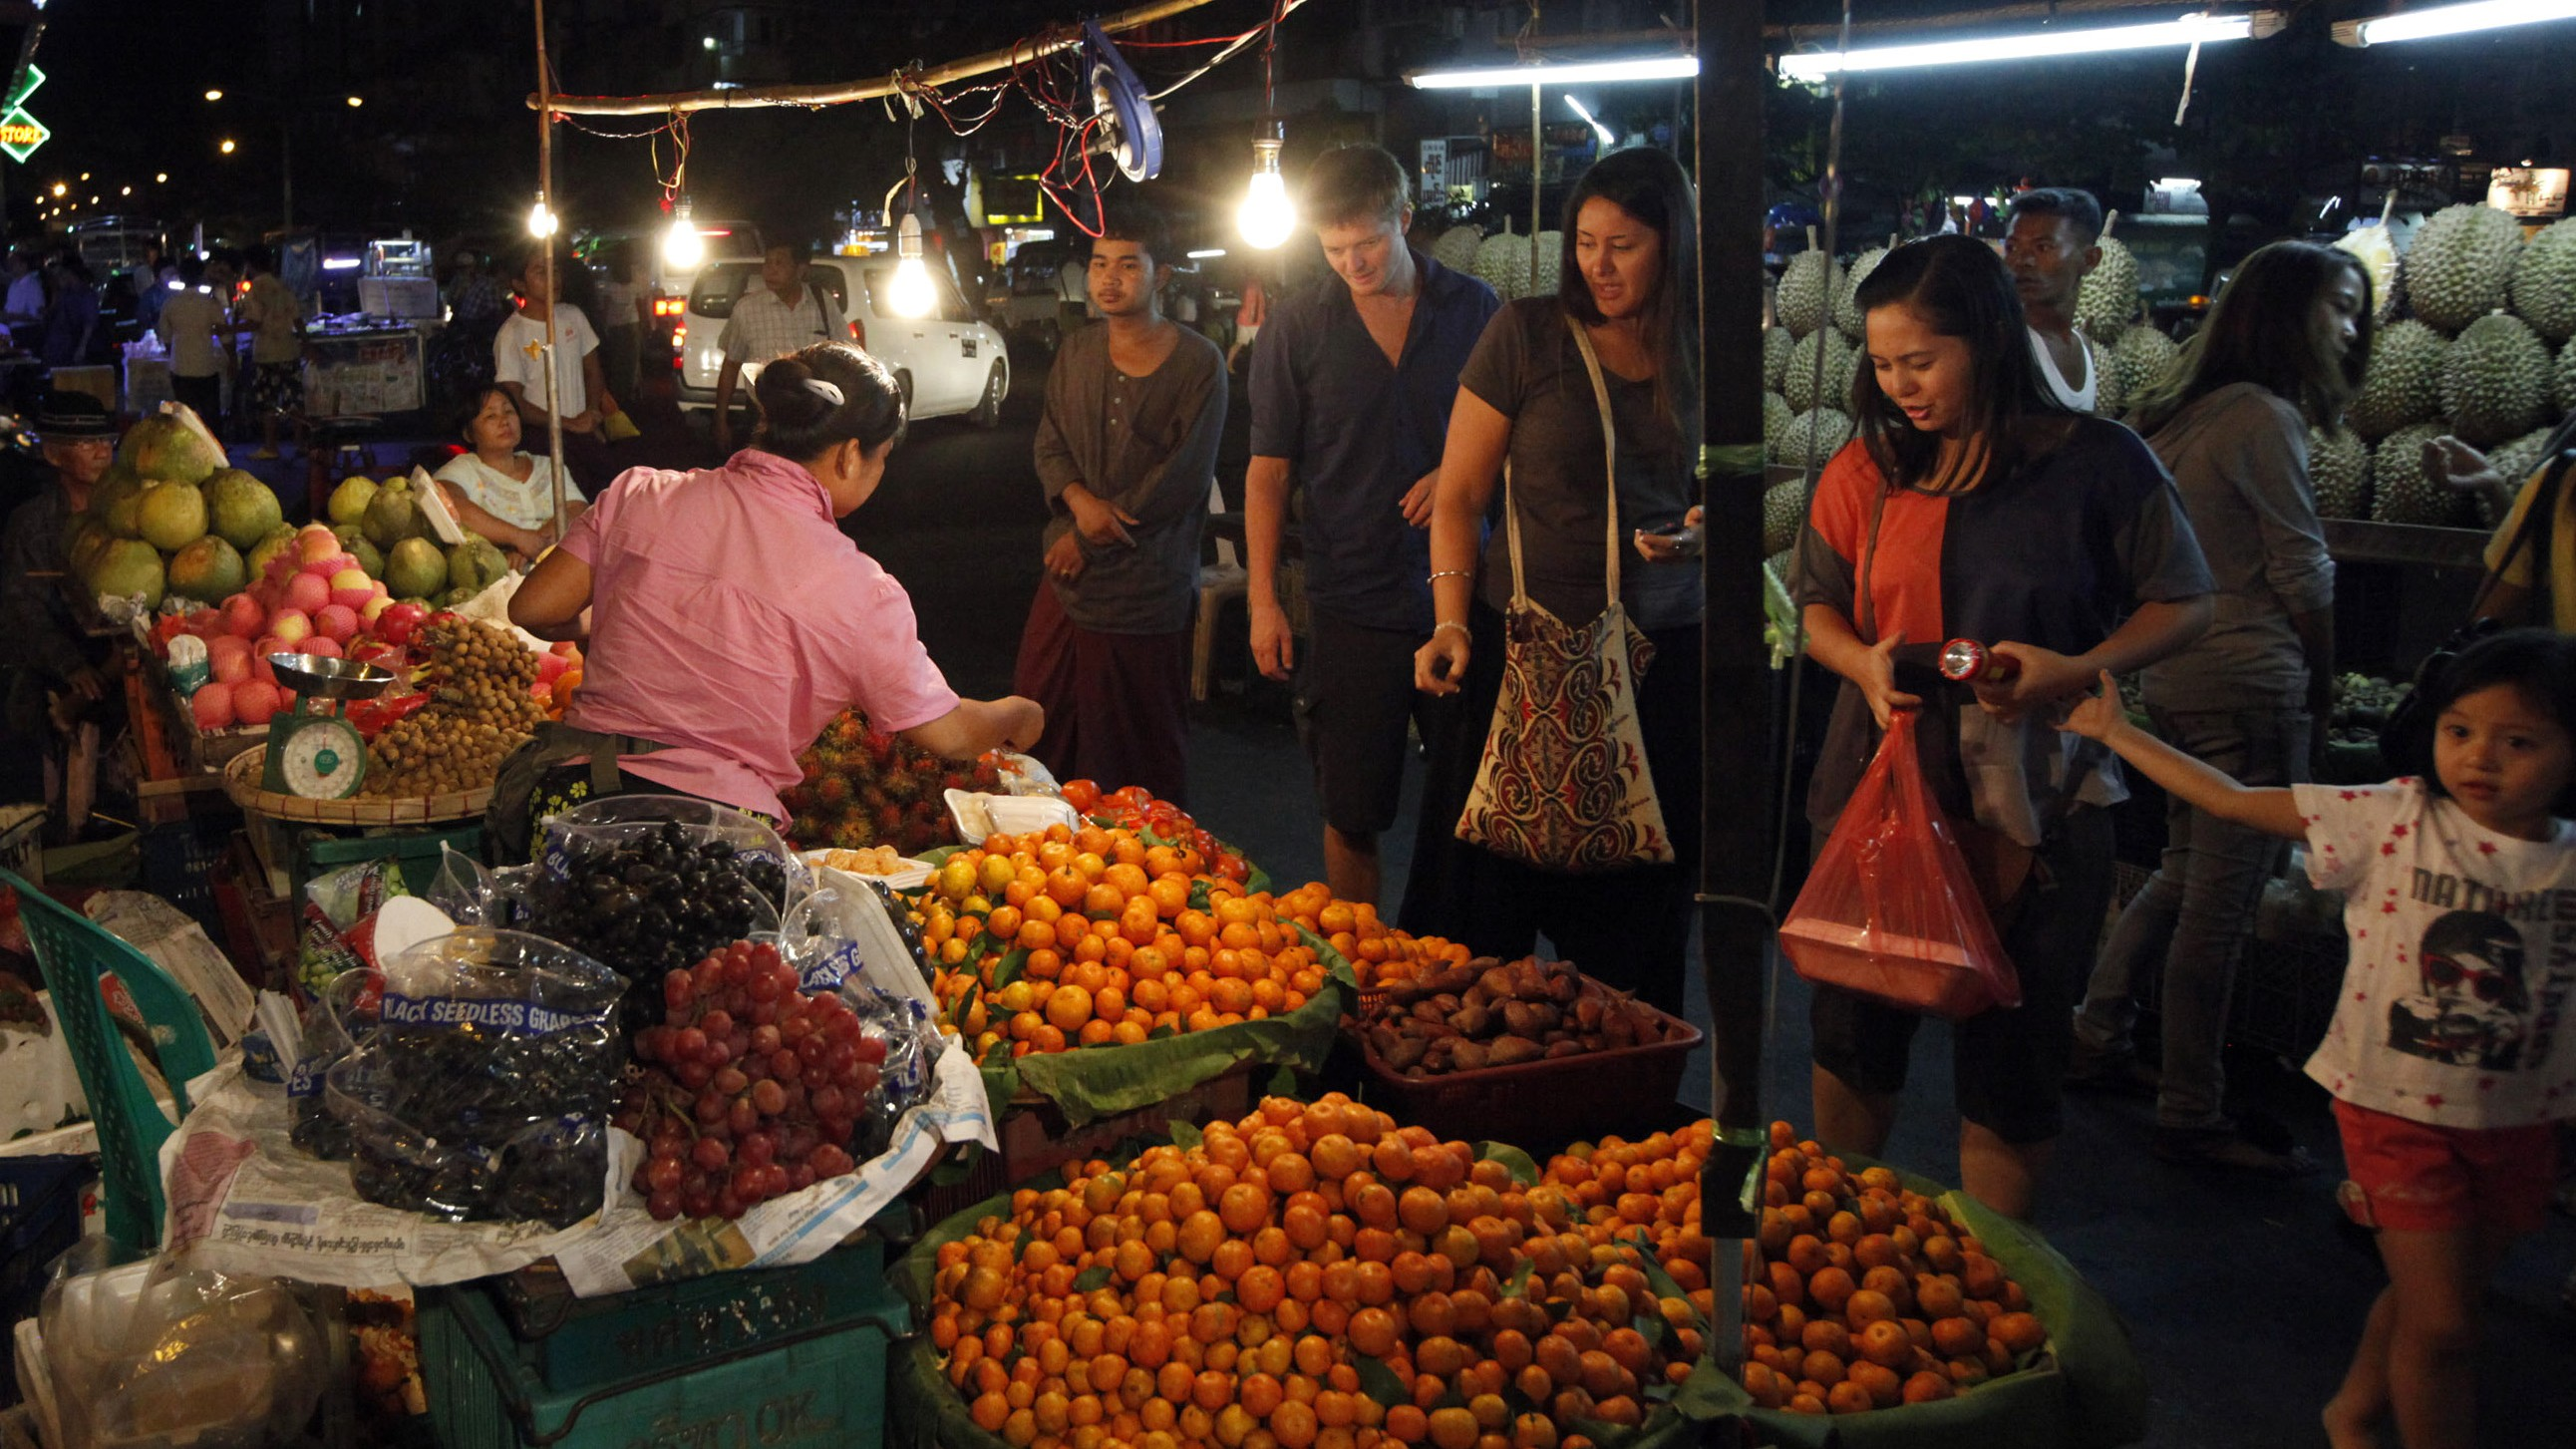 In this photo taken on Wednesday, Jan.16, 2013, customers buy fruits at roadside stall in China town in Yangon, Myanmar. (AP Photo/Khin Maung Win)